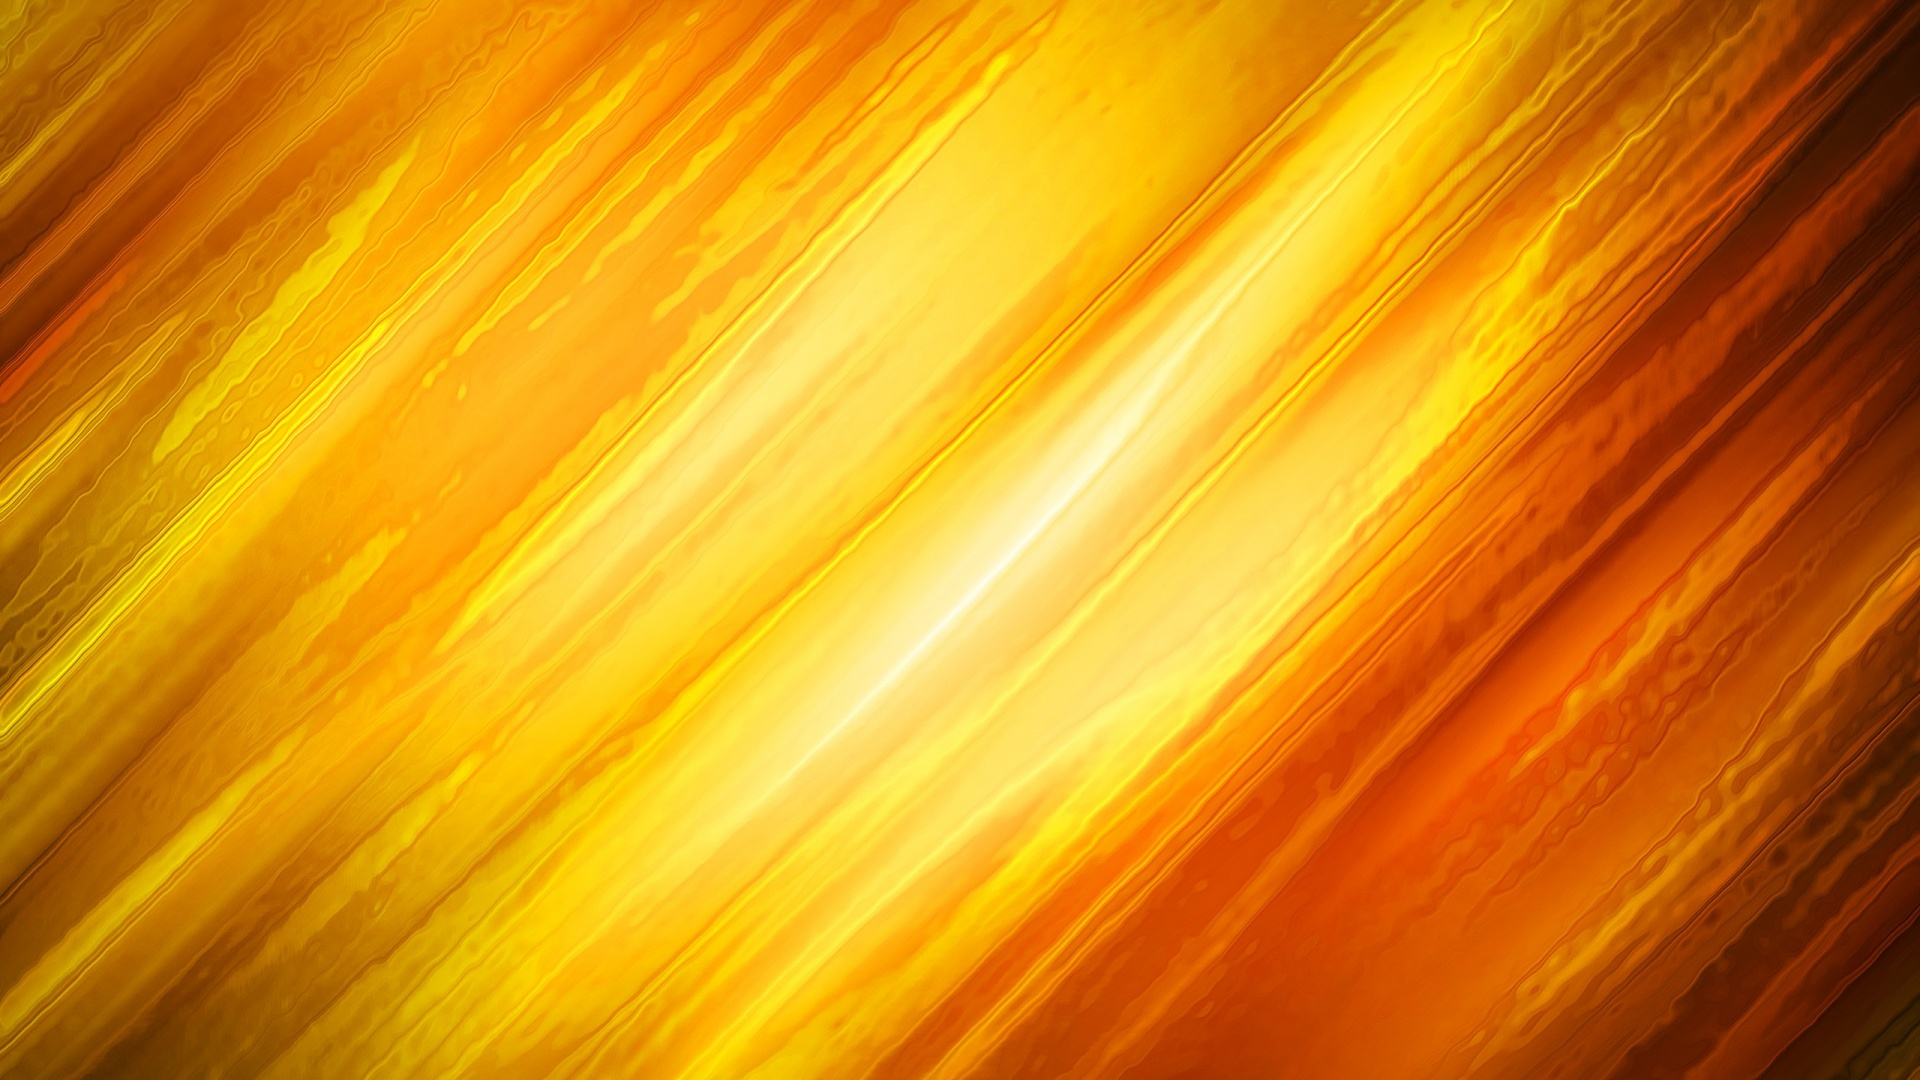 Abstract Yellow and Orange Background desktop PC and Mac wallpaperYellow Abstract Wallpapers